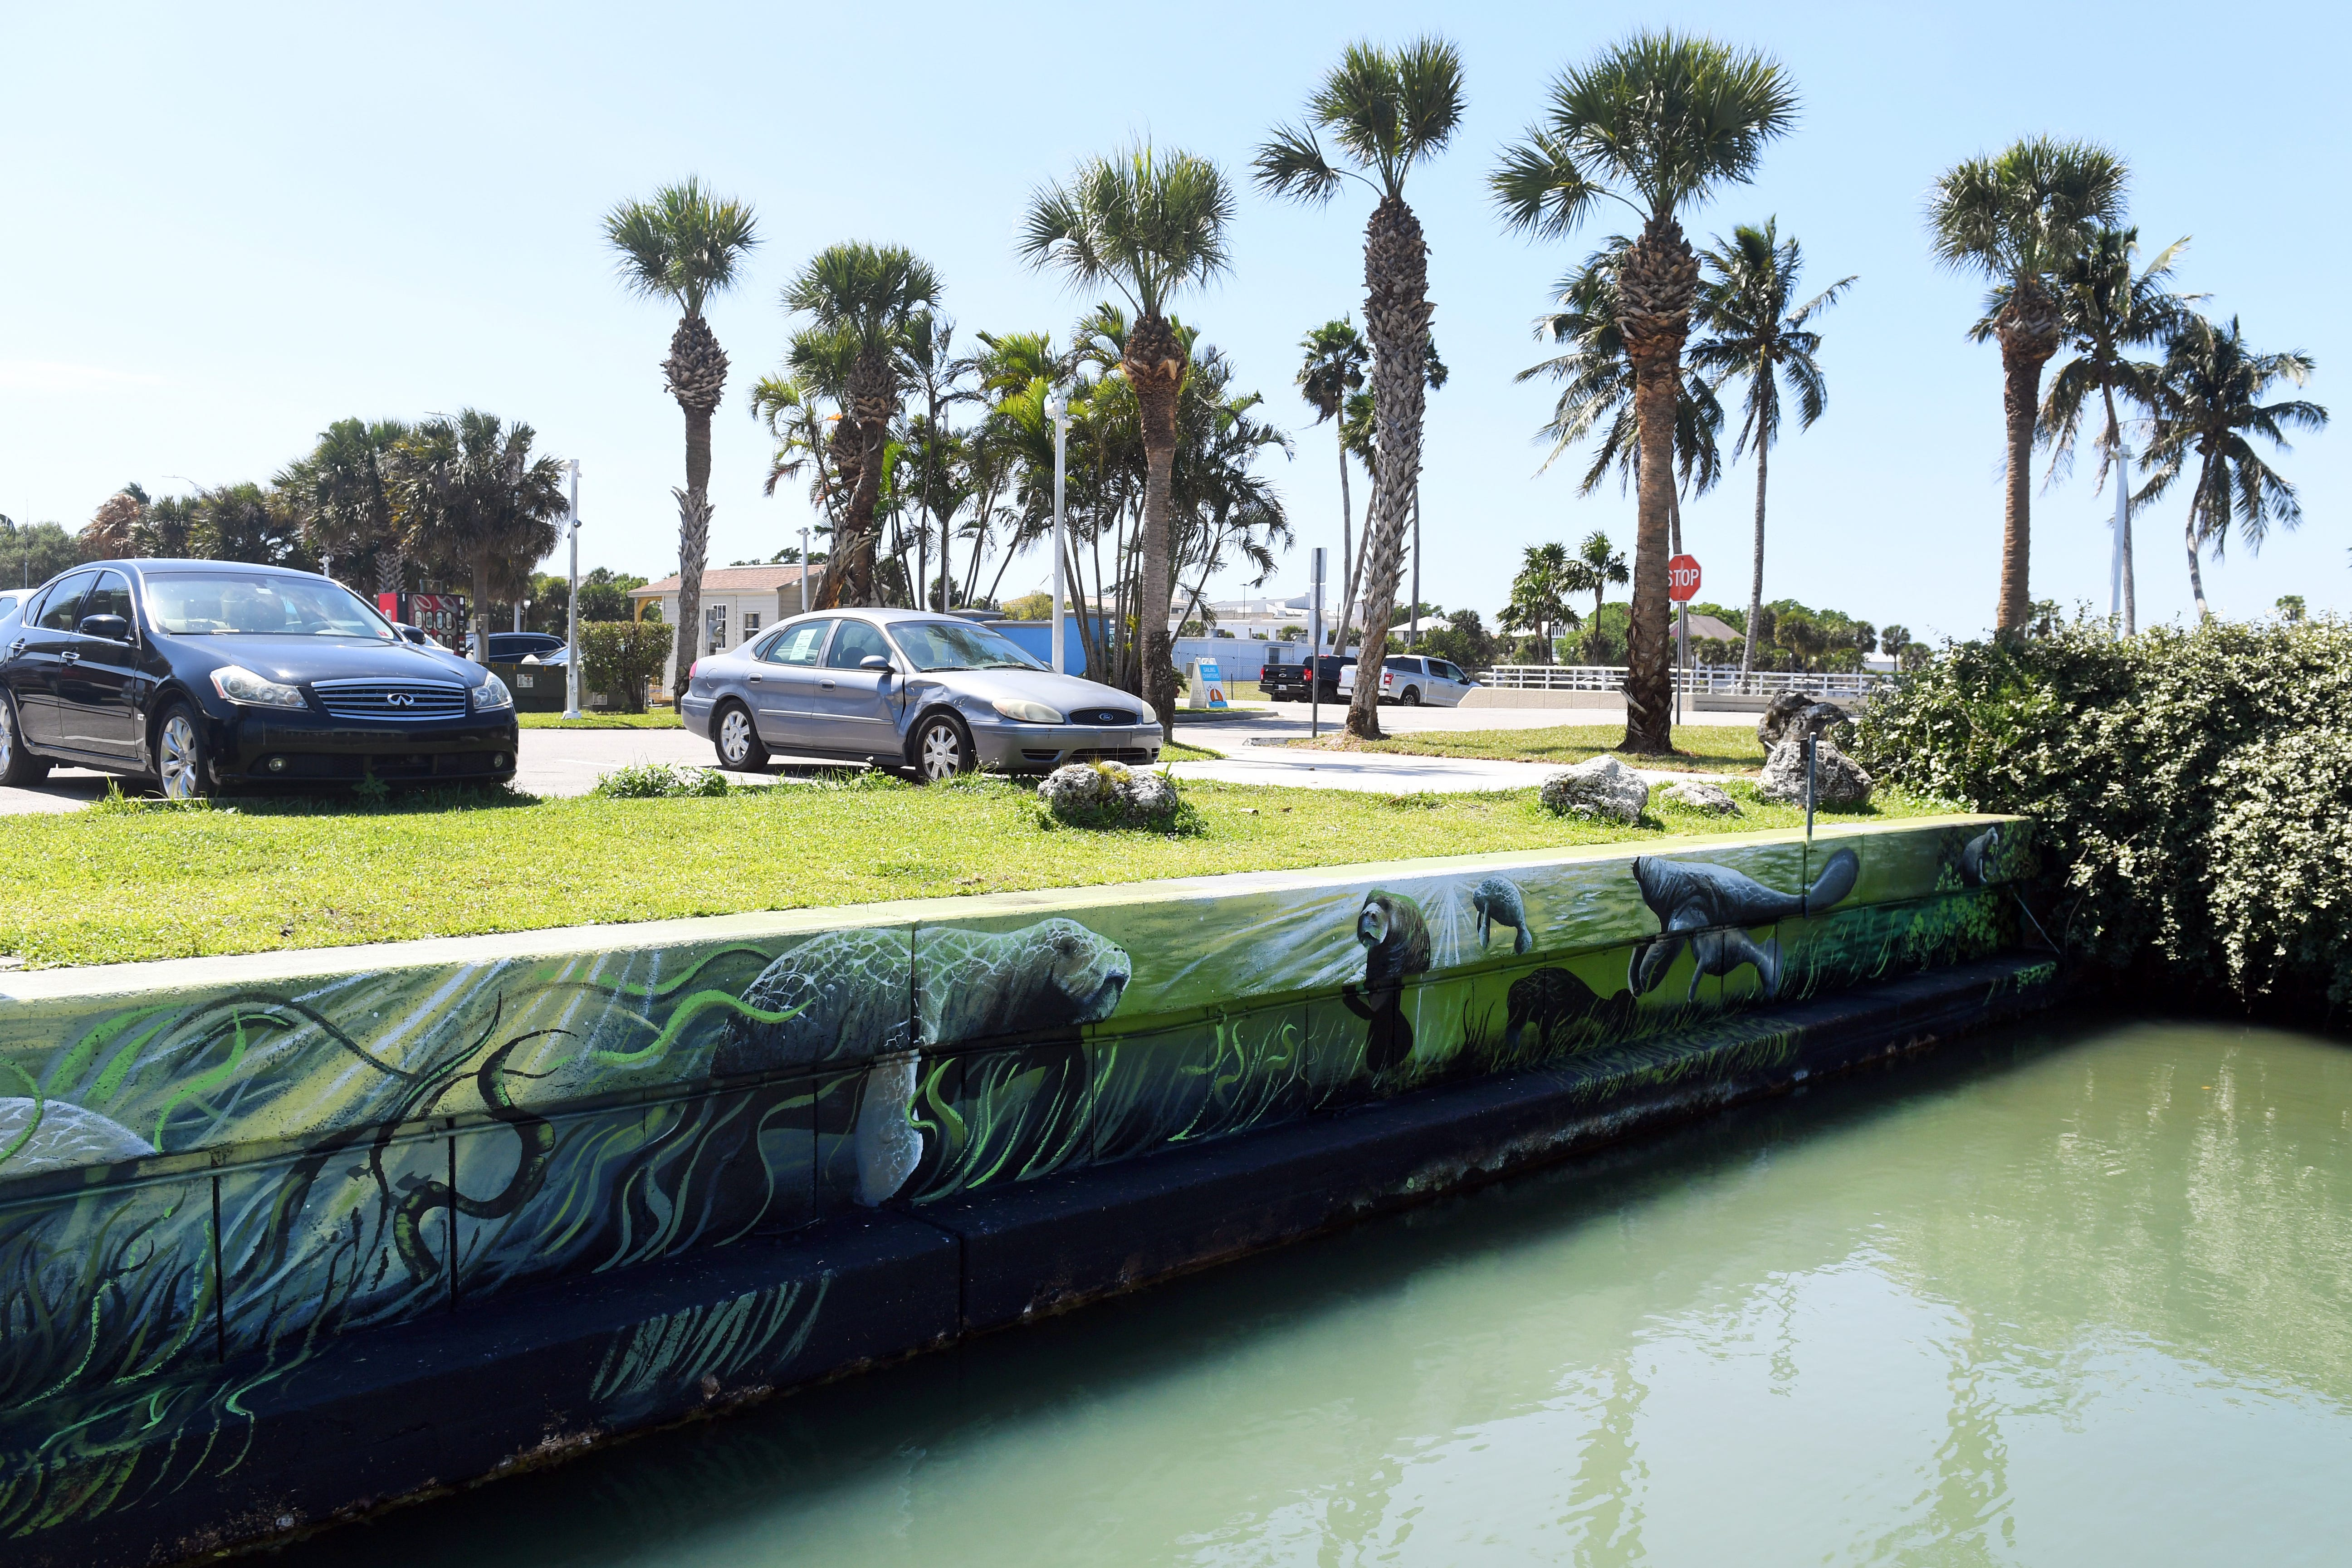 A new mural adorns the southern seawall of Moore's Creek across from the Manatee Observation and Education Center on Friday, March 19, 2021, in Fort Pierce, Fla. The mural, a collaboration between the City of Fort Pierce, the Treasure Coast Manatee Foundation and the Manatee Observation and Education Center, was created by Tallahassee-based artist Kenny Maguire.